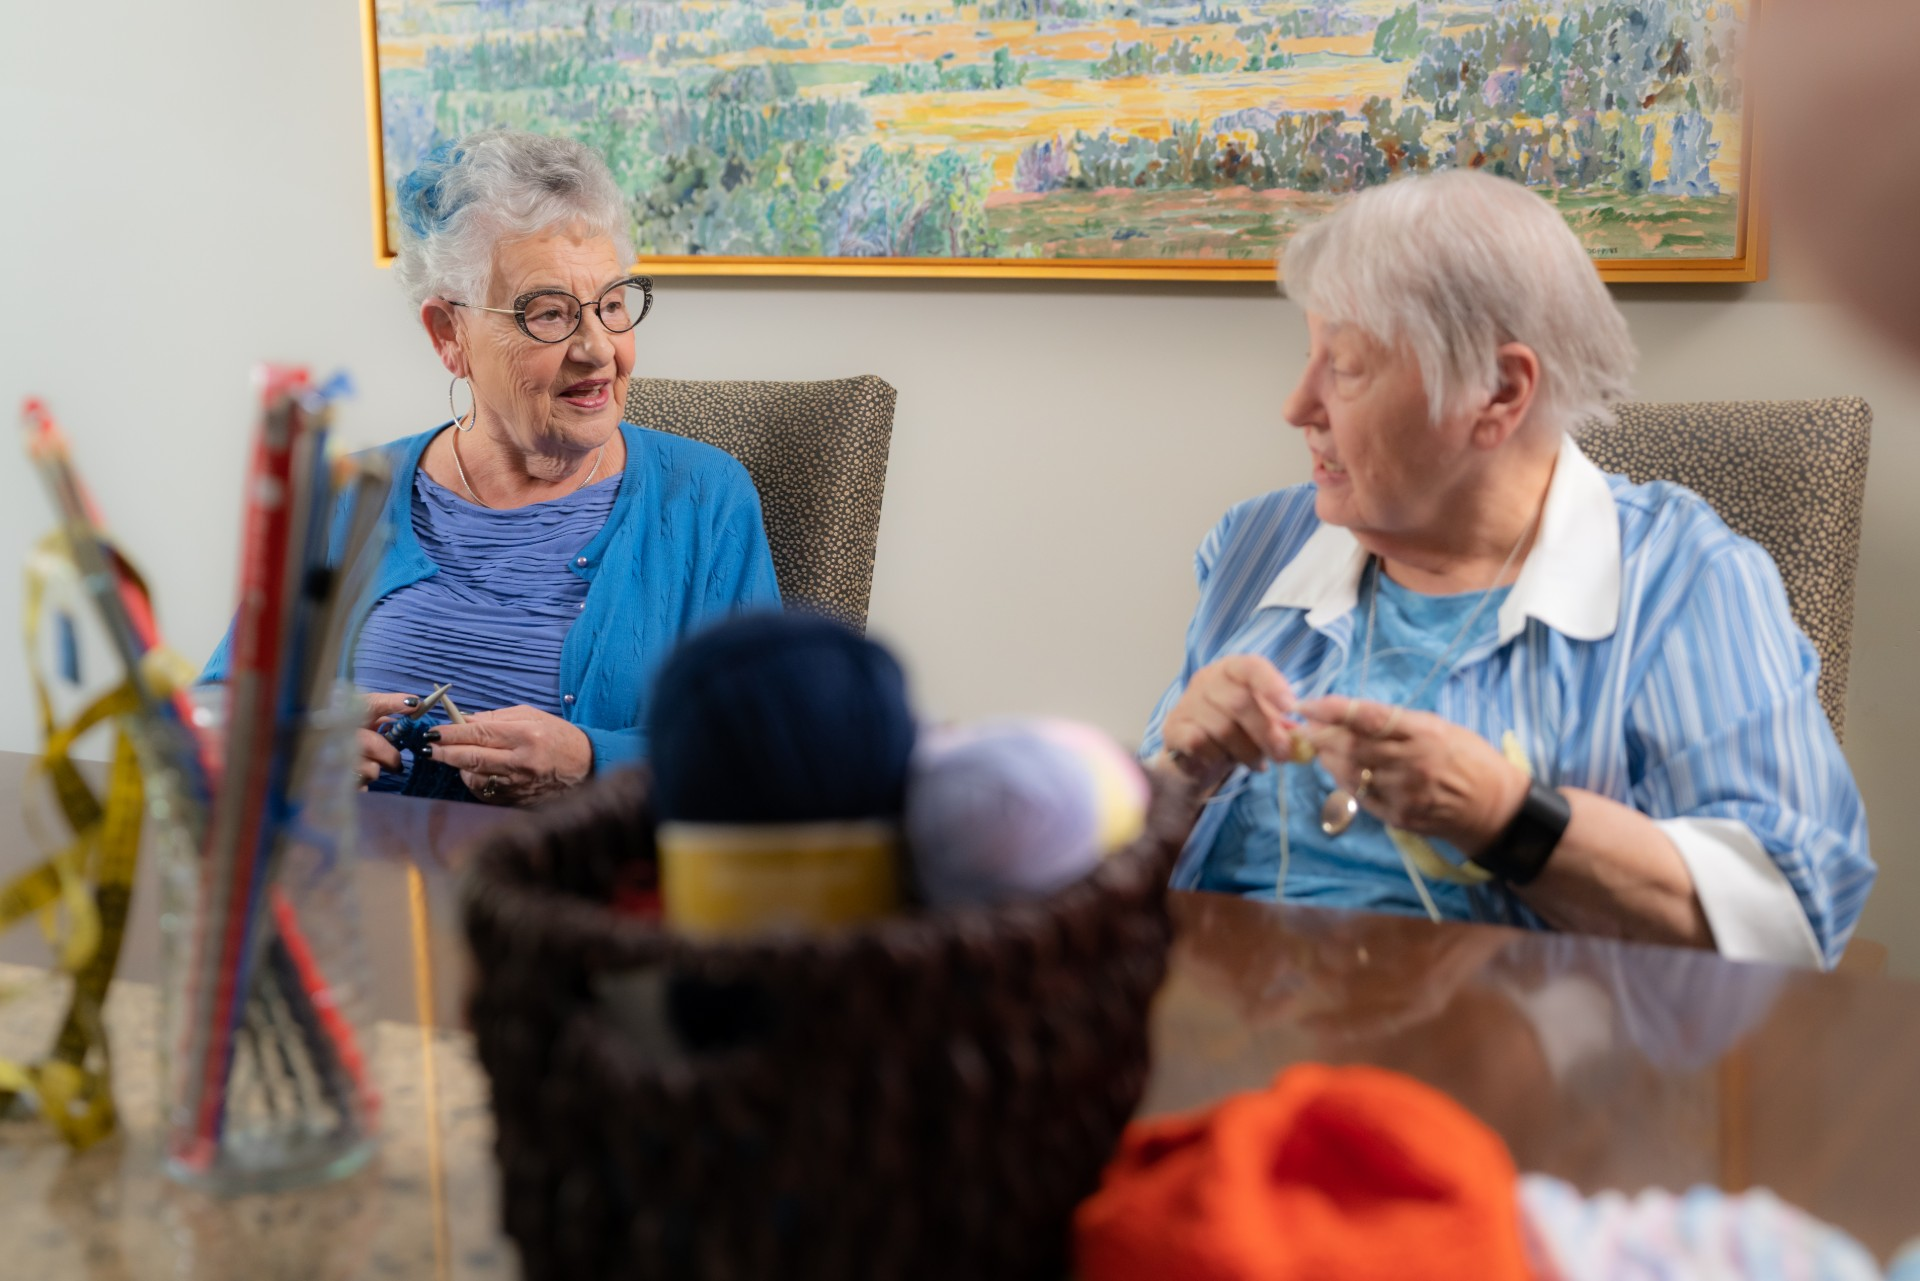 Resident knitting with friend